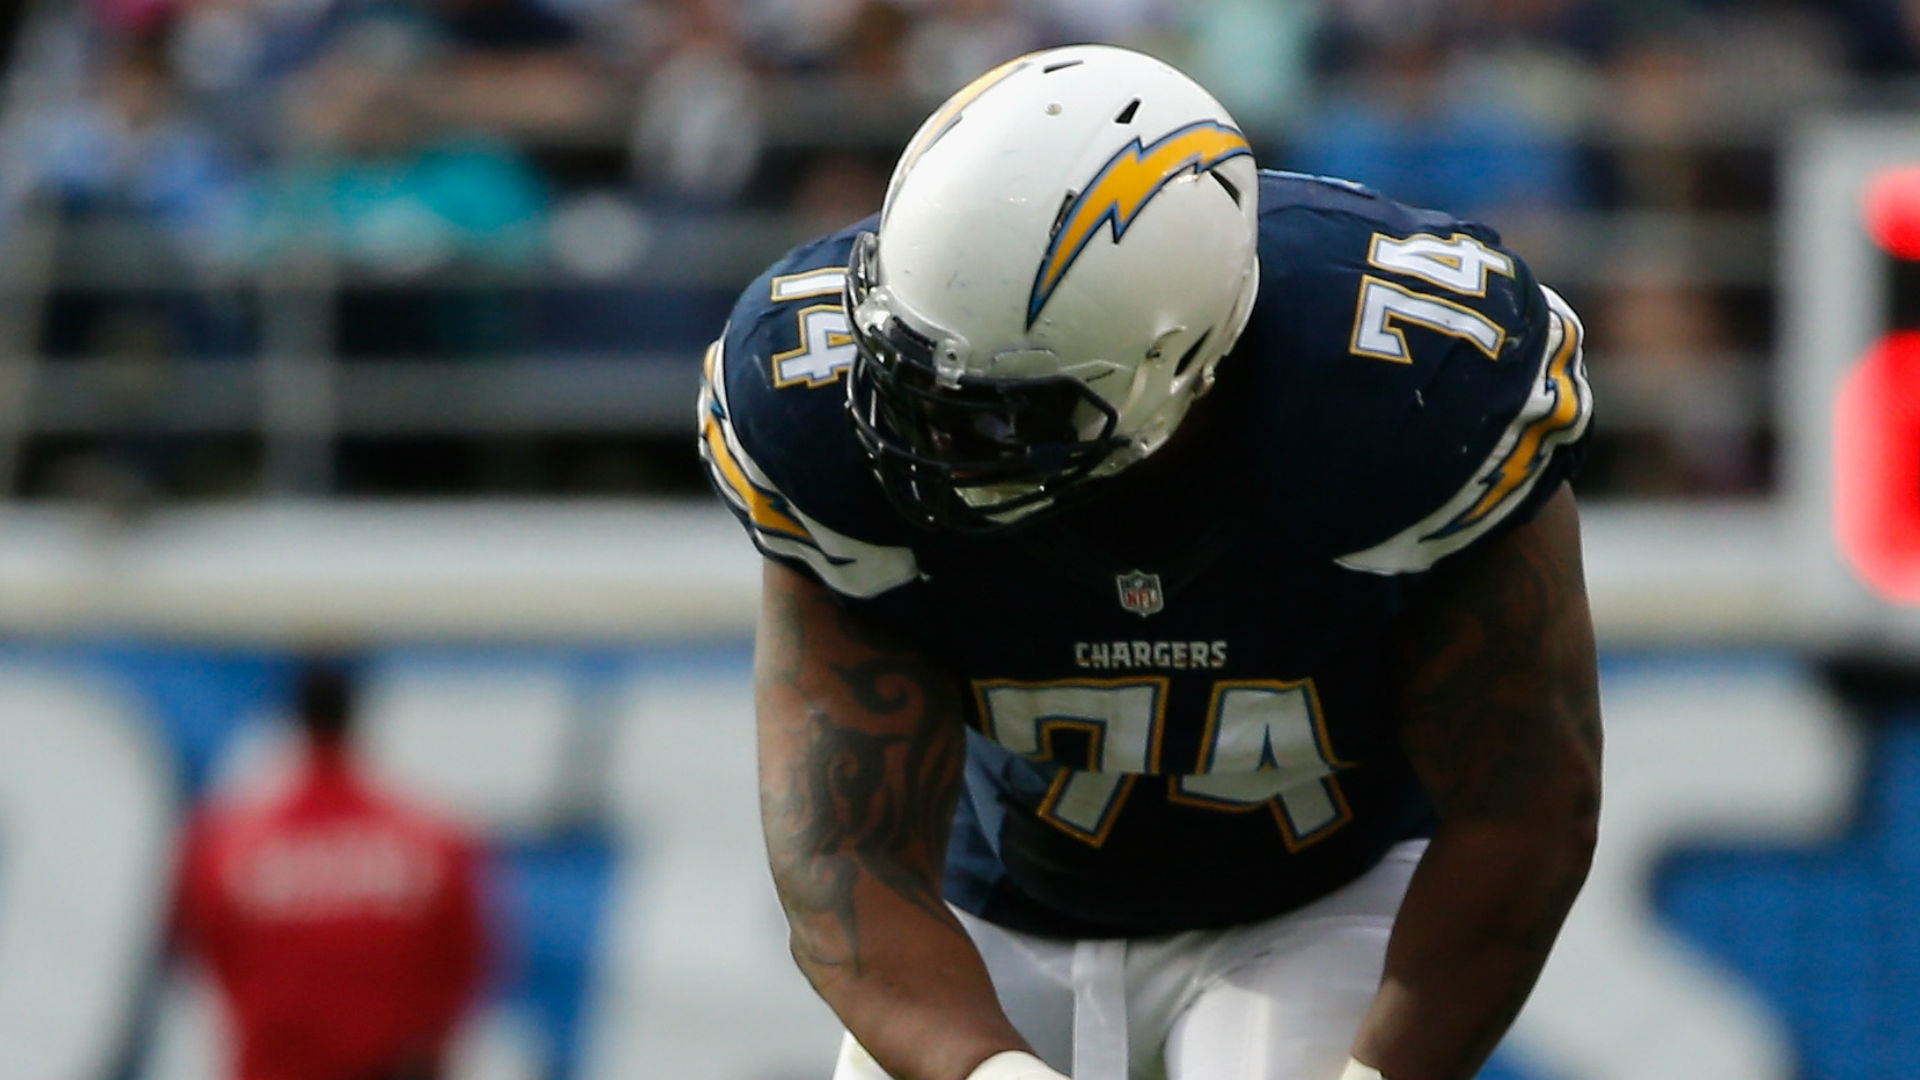 Saints sign offensive lineman Orlando Franklin, beef up depth